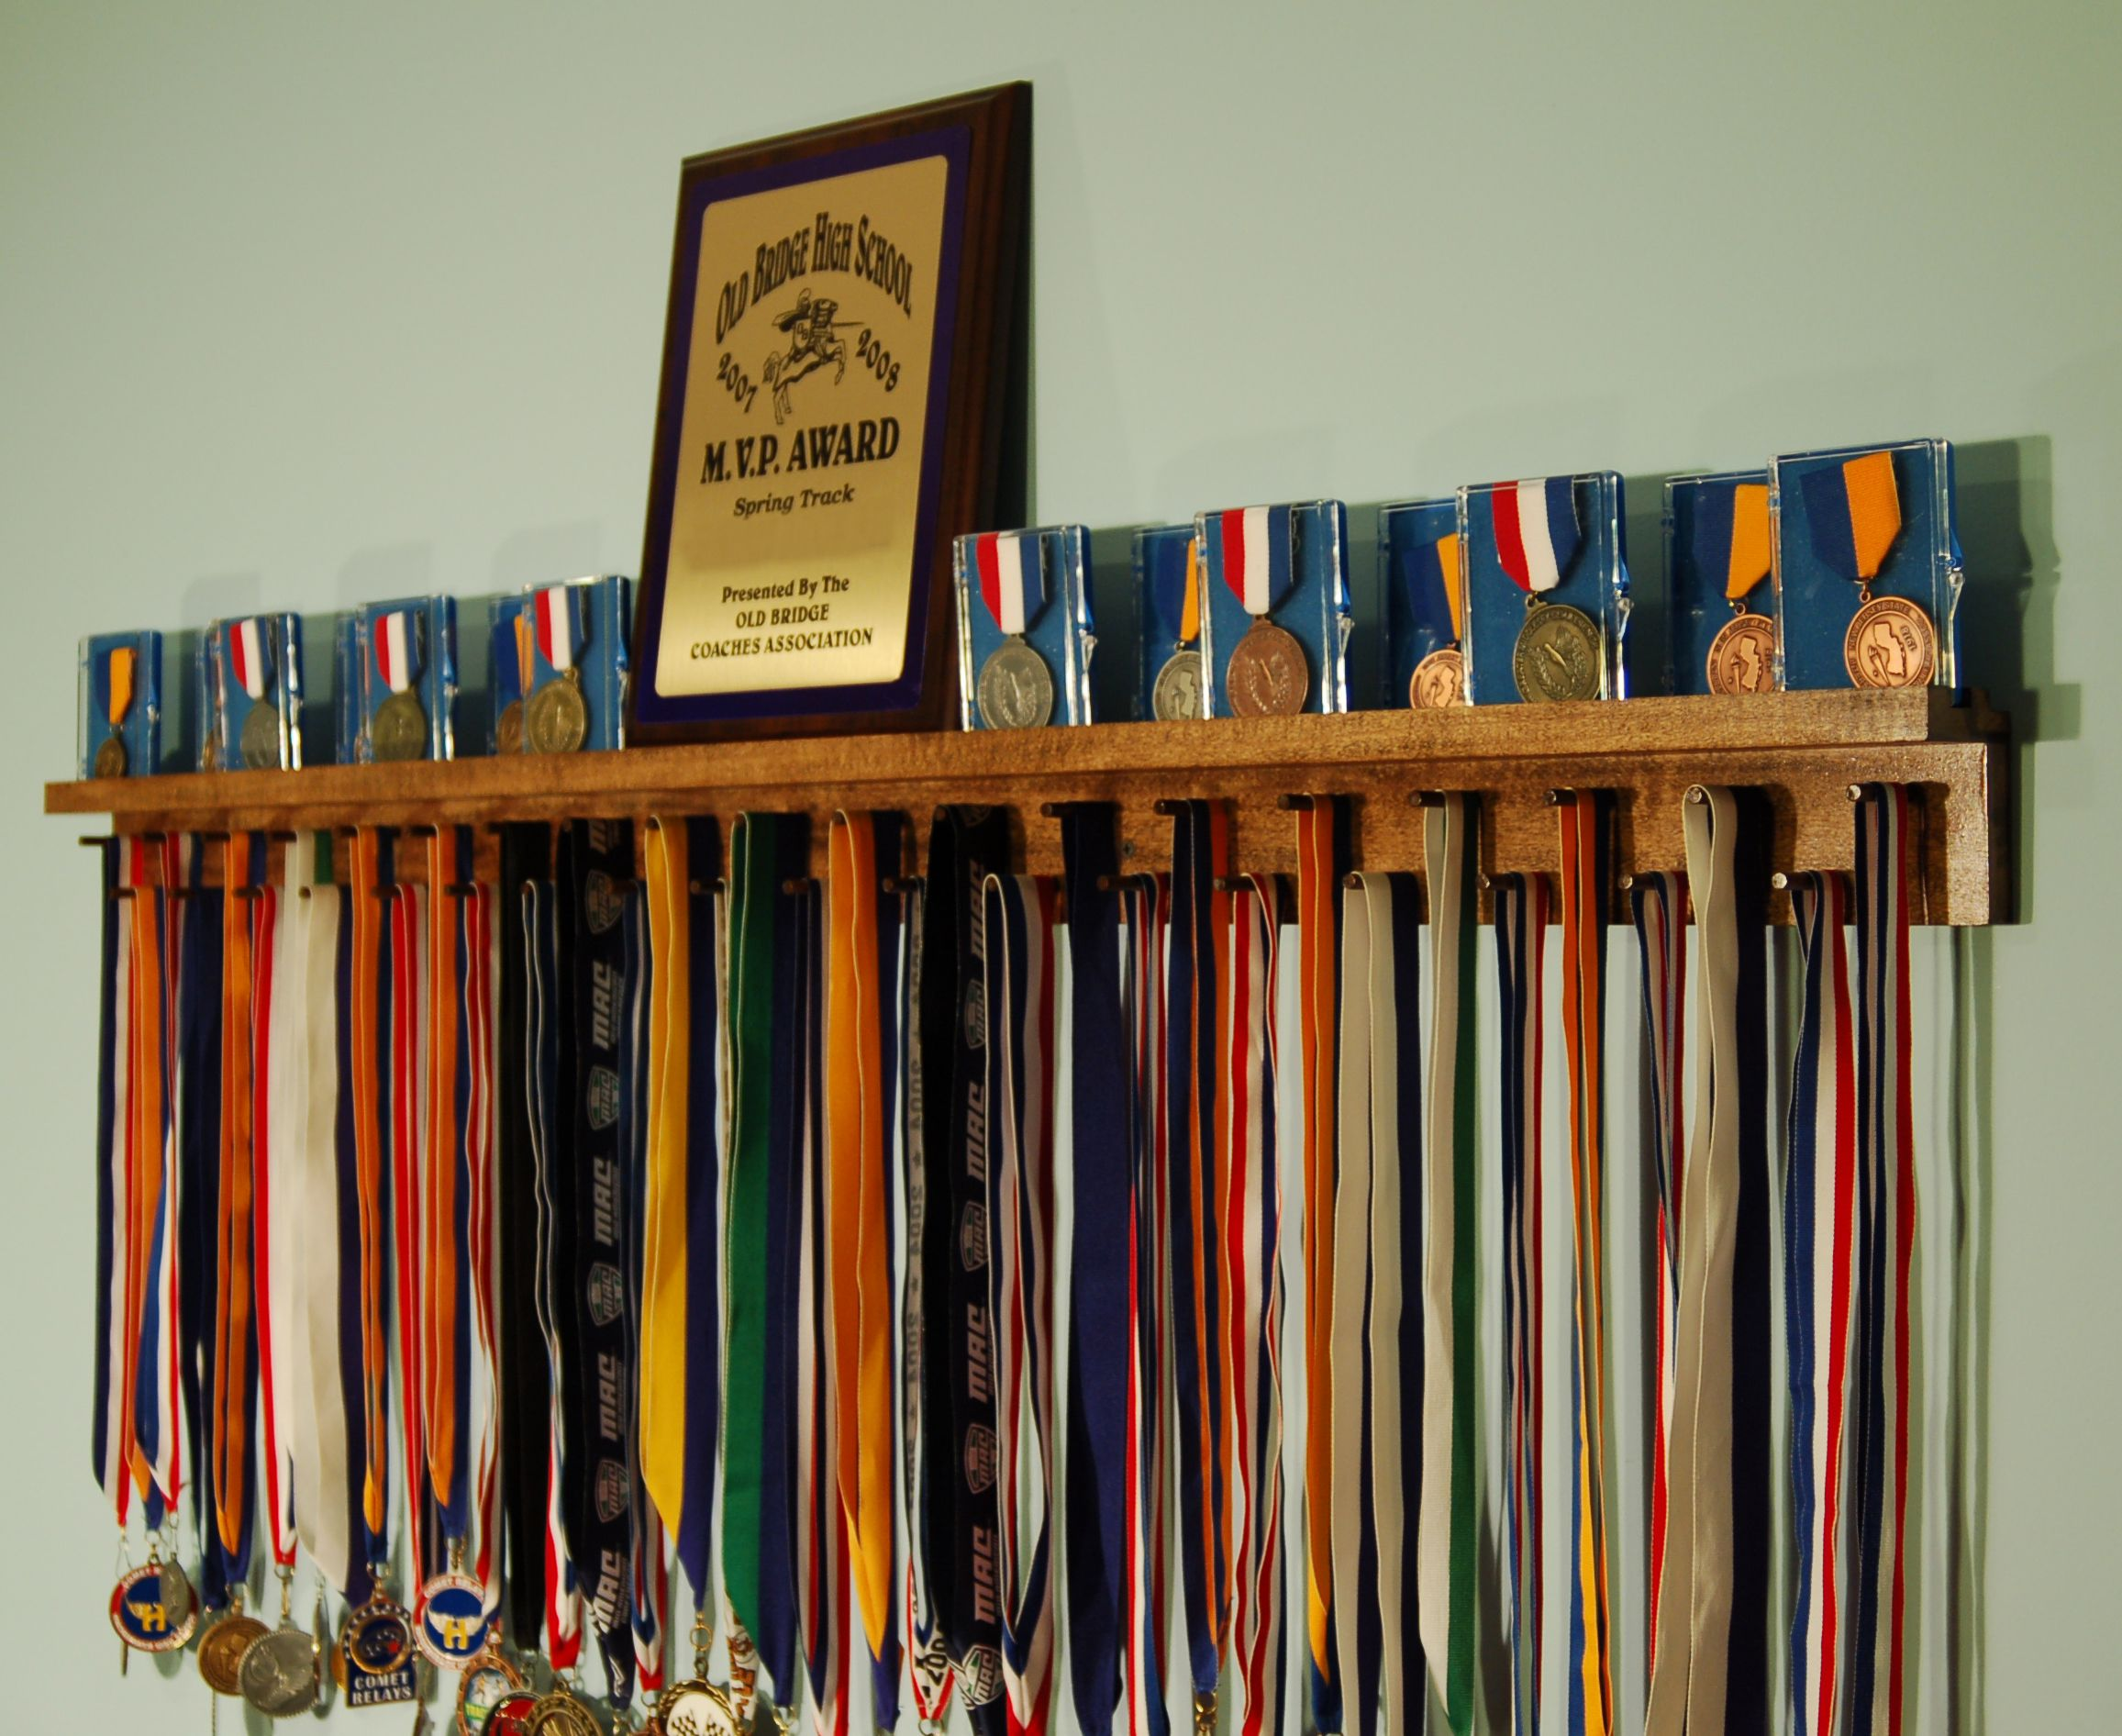 school com cabinet shelf htm cabinets trophiesandmedals trophies awards schools for trophy clubs and wallfixed medal showcases